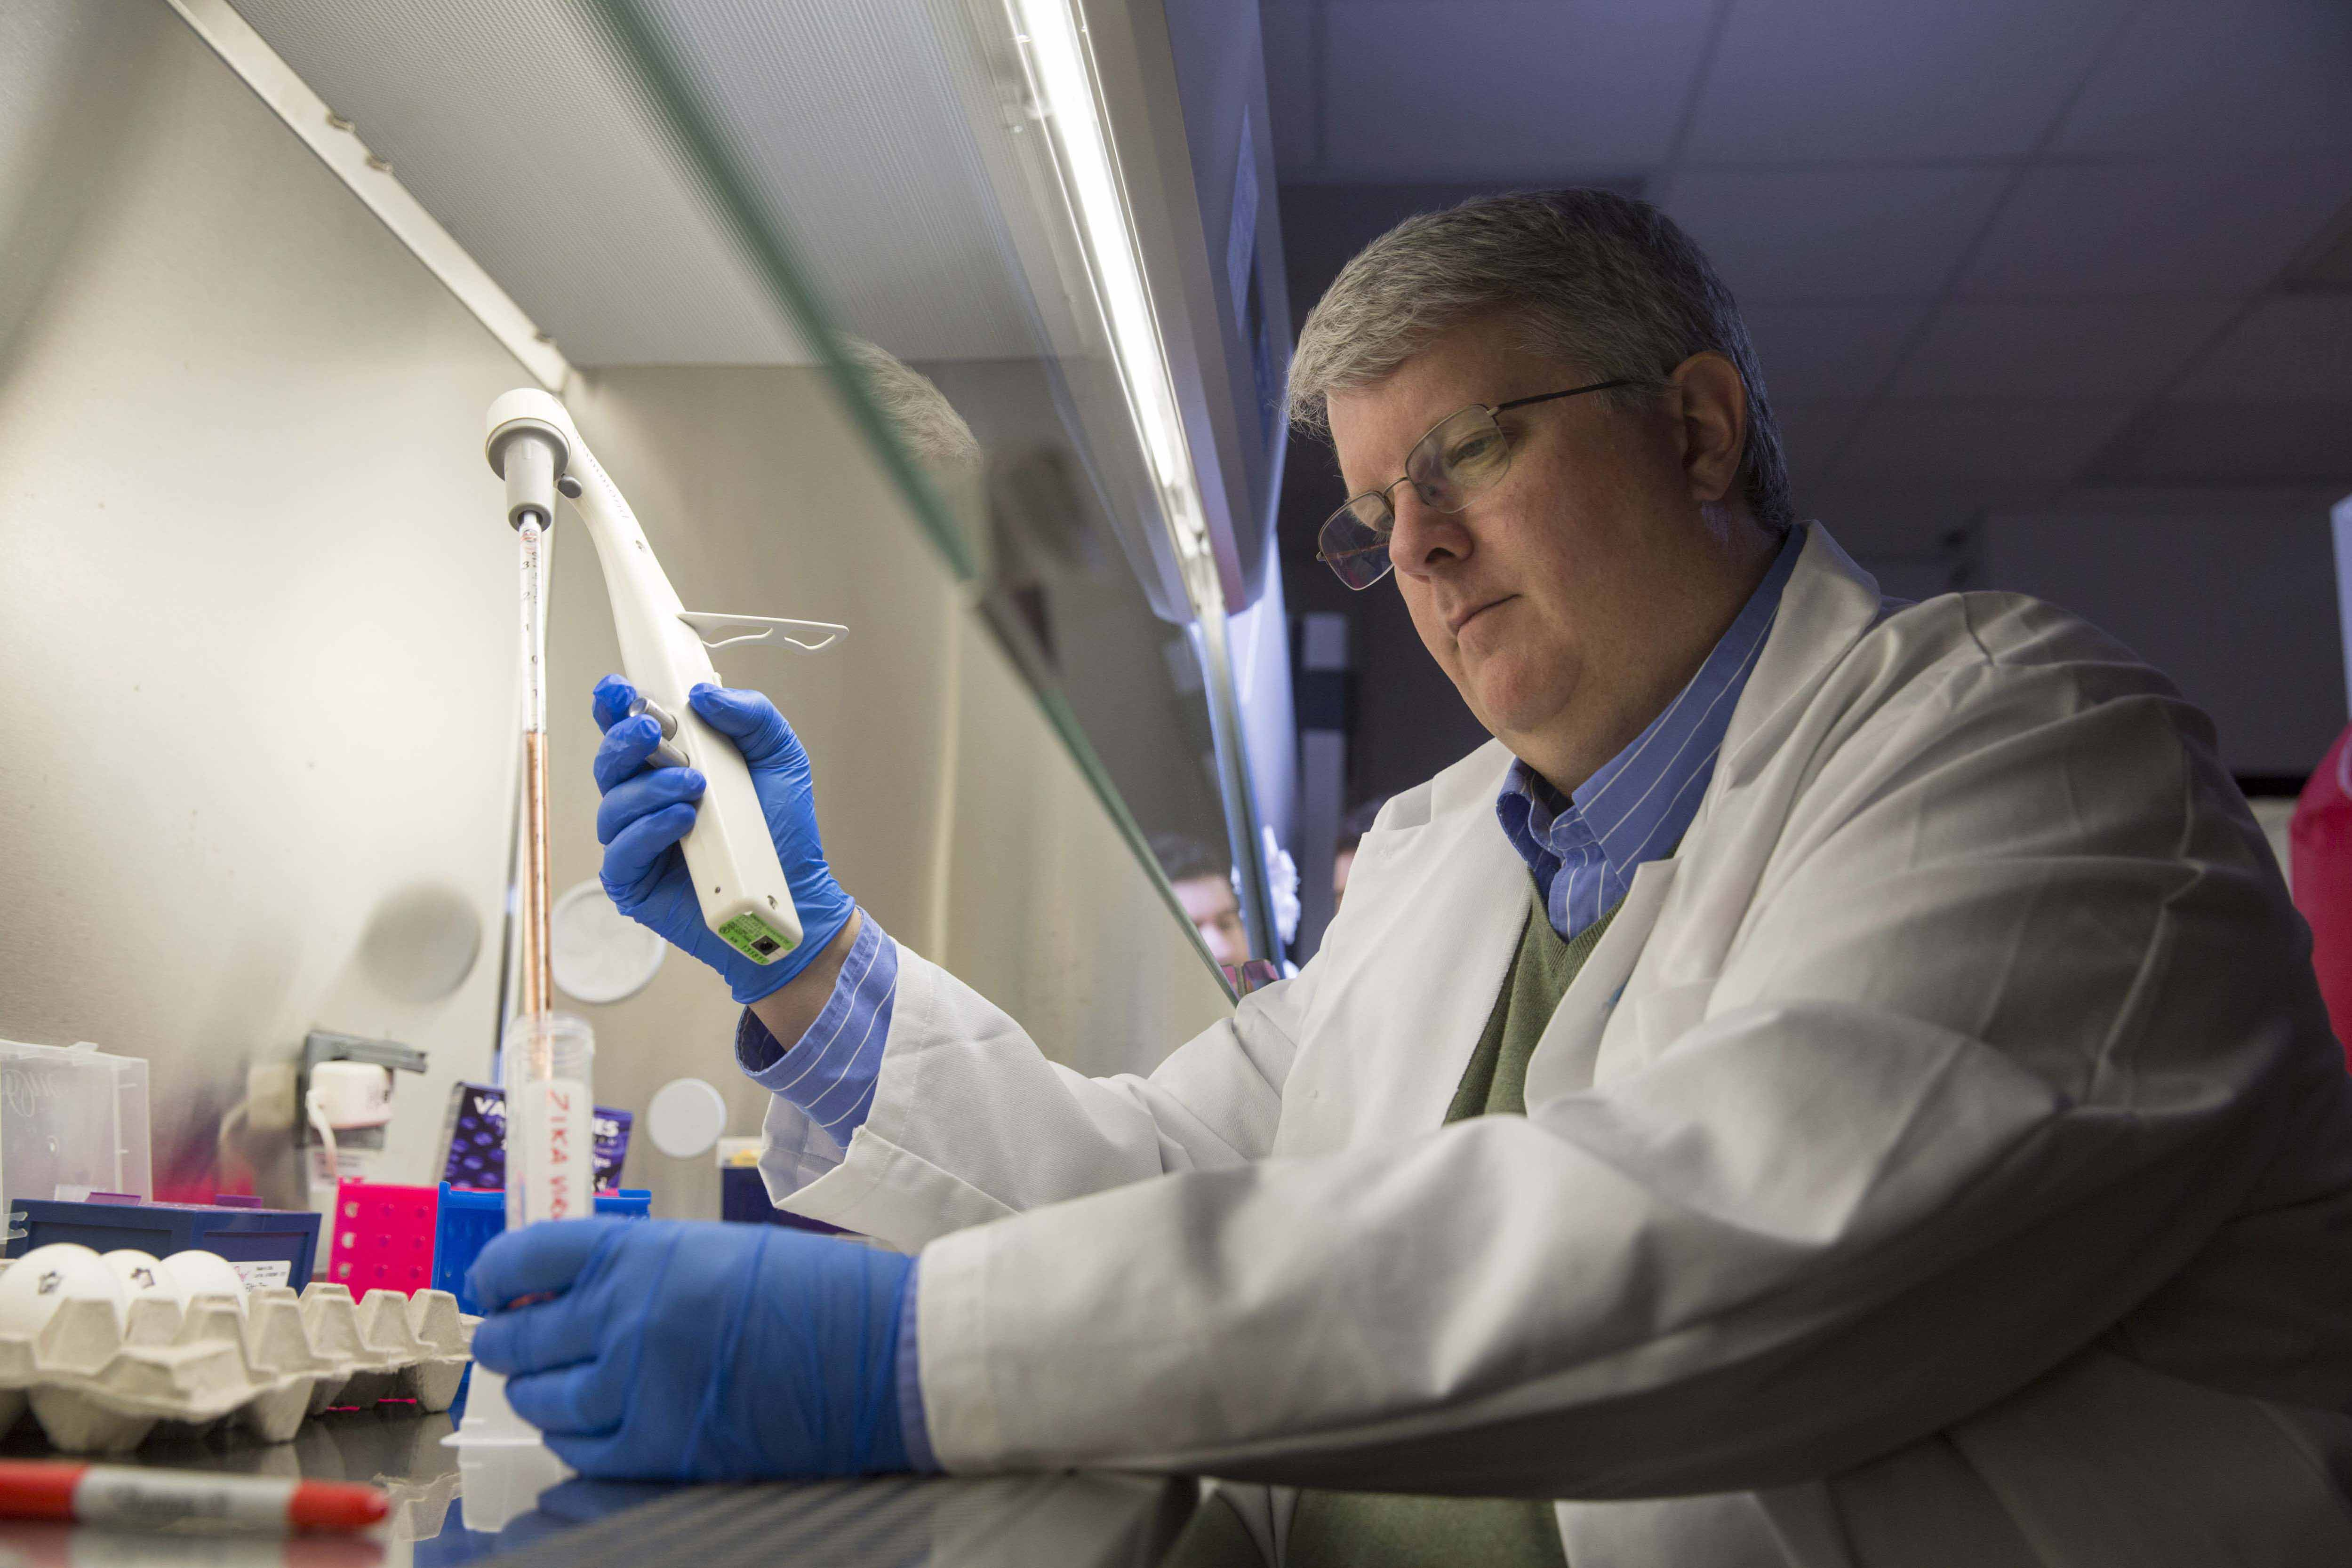 Ted M. Ross, Georgia Research Alliance Eminent Scholar of Infectious Diseases in UGA's College of Veterinary Medicine, is leading an NIH project to create and test new influenza vaccines that may one day replace seasonal vaccines.